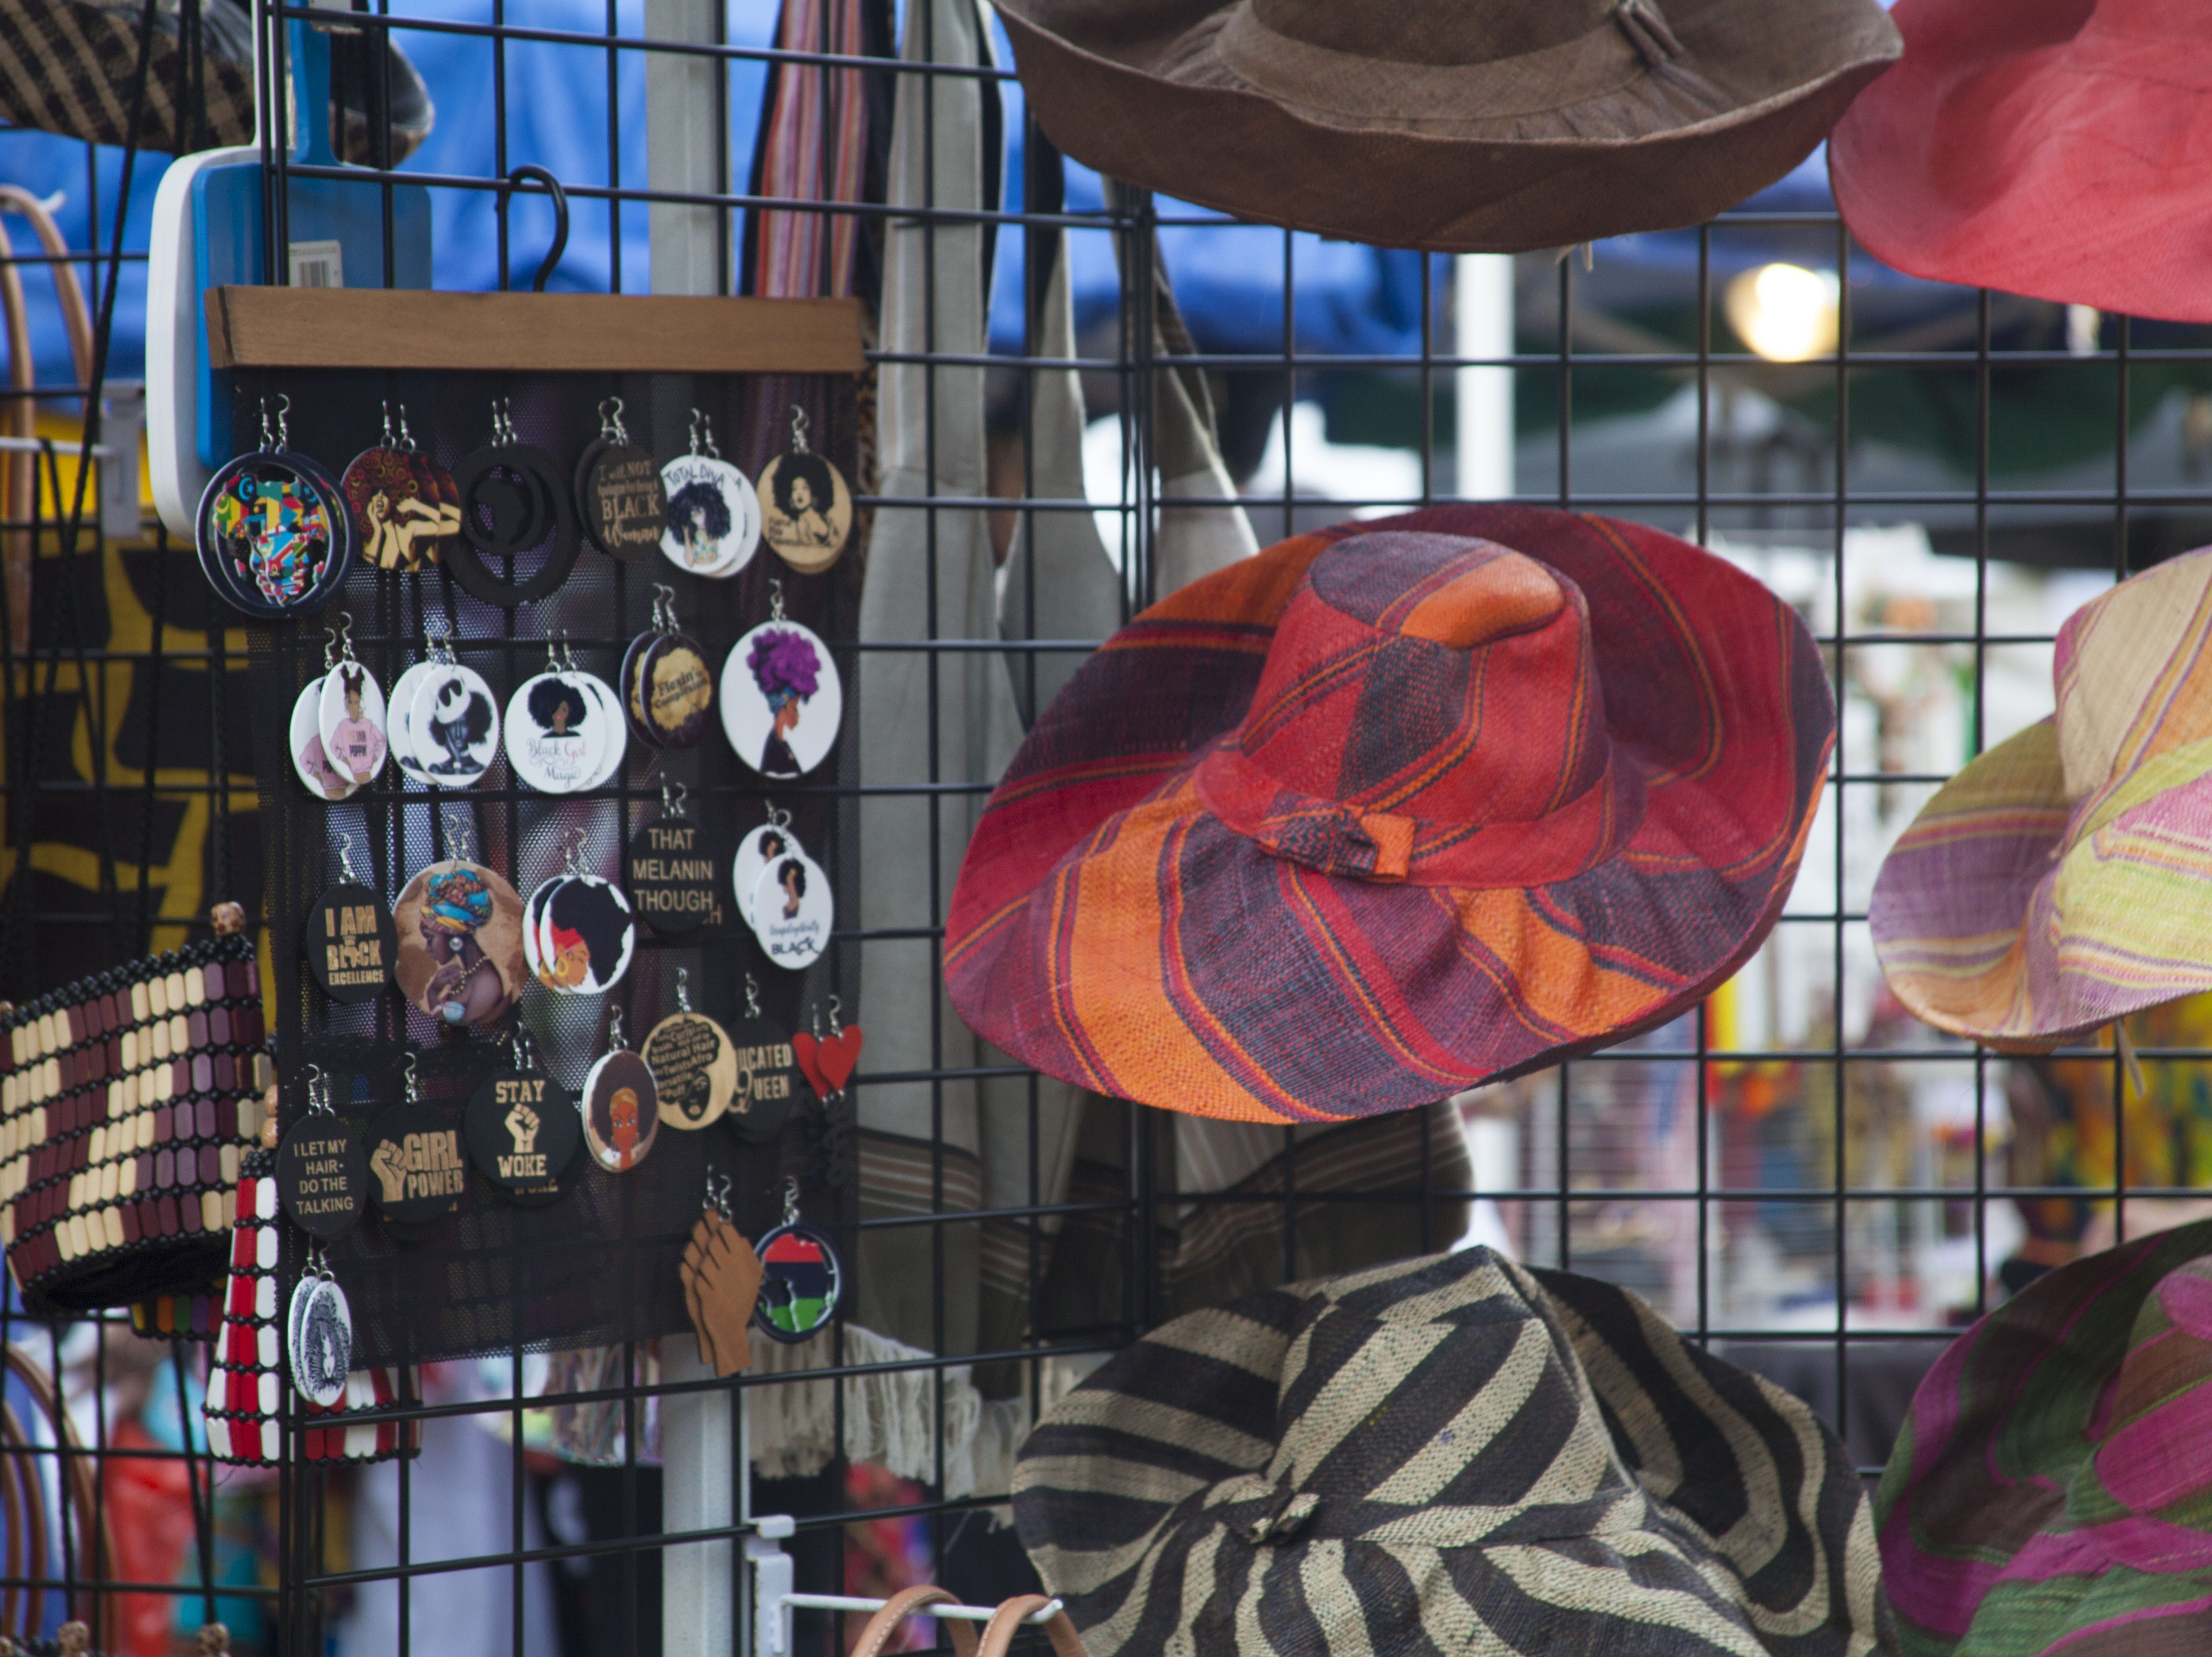 Items for sale at the 2018 Goombay Festival at the Roger McGuire Green in Pack Square Park on Sept. 8, 2018.